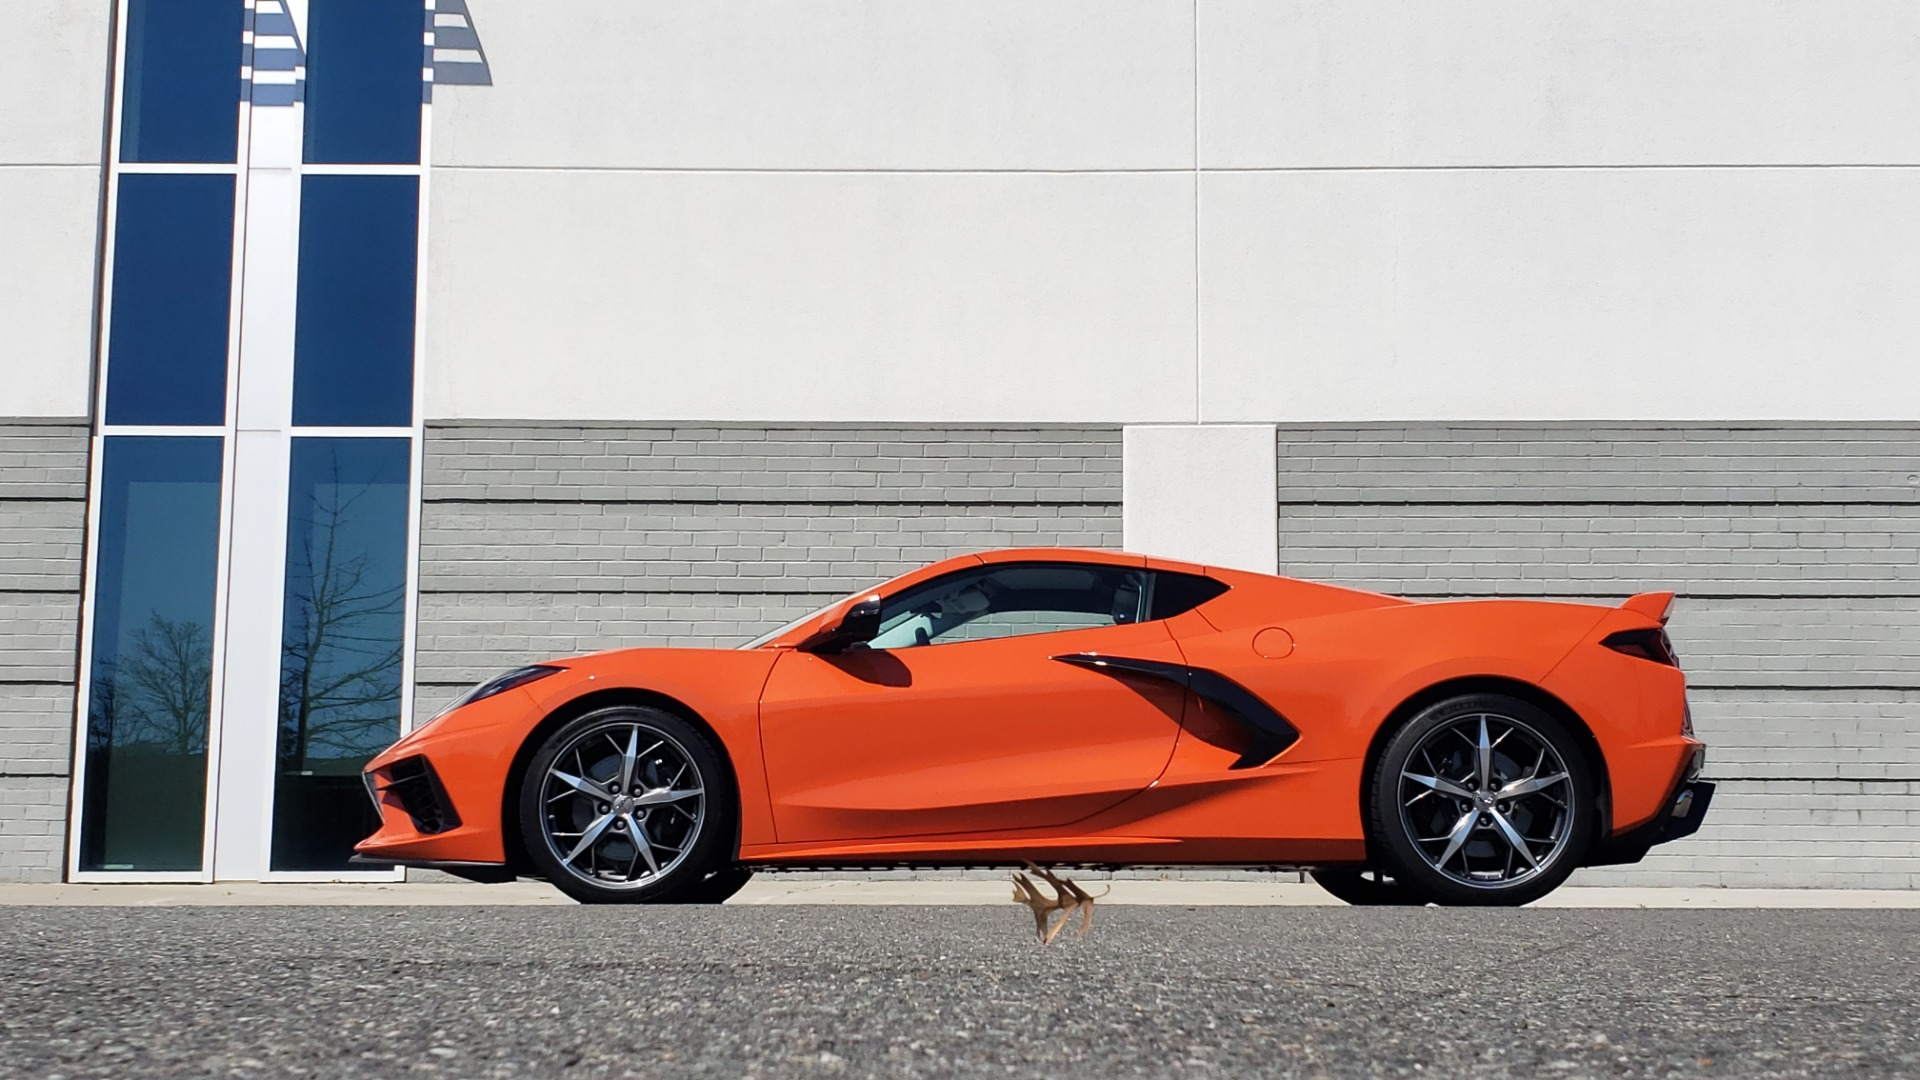 Used 2020 Chevrolet CORVETTE C8 STINGRAY 3LT COUPE / NAV / BOSE / CAMERA / LIKE NEW for sale Sold at Formula Imports in Charlotte NC 28227 4